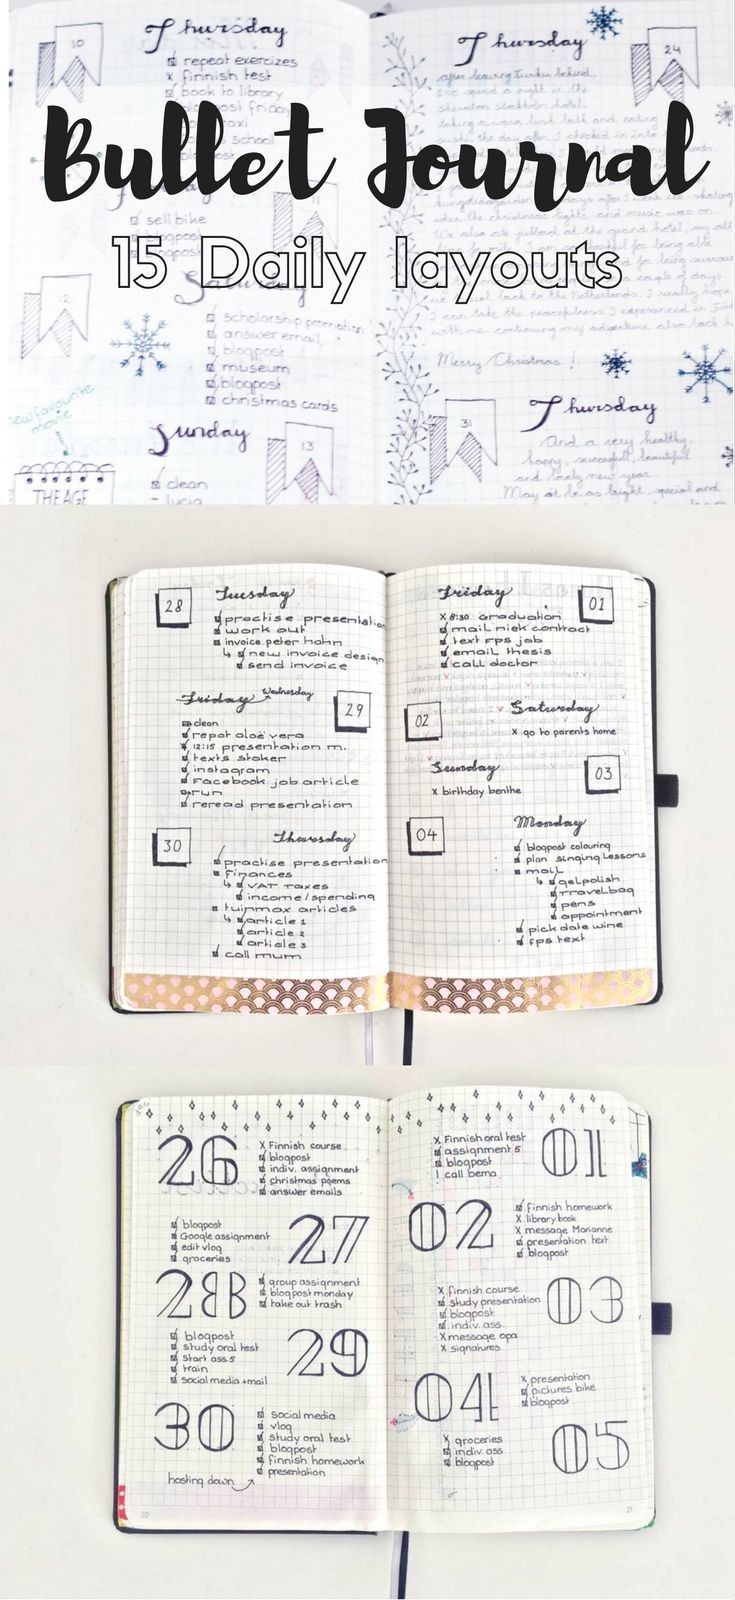 15 diffferent daily layouts for the bullet journal bullet journal berries pinterest. Black Bedroom Furniture Sets. Home Design Ideas